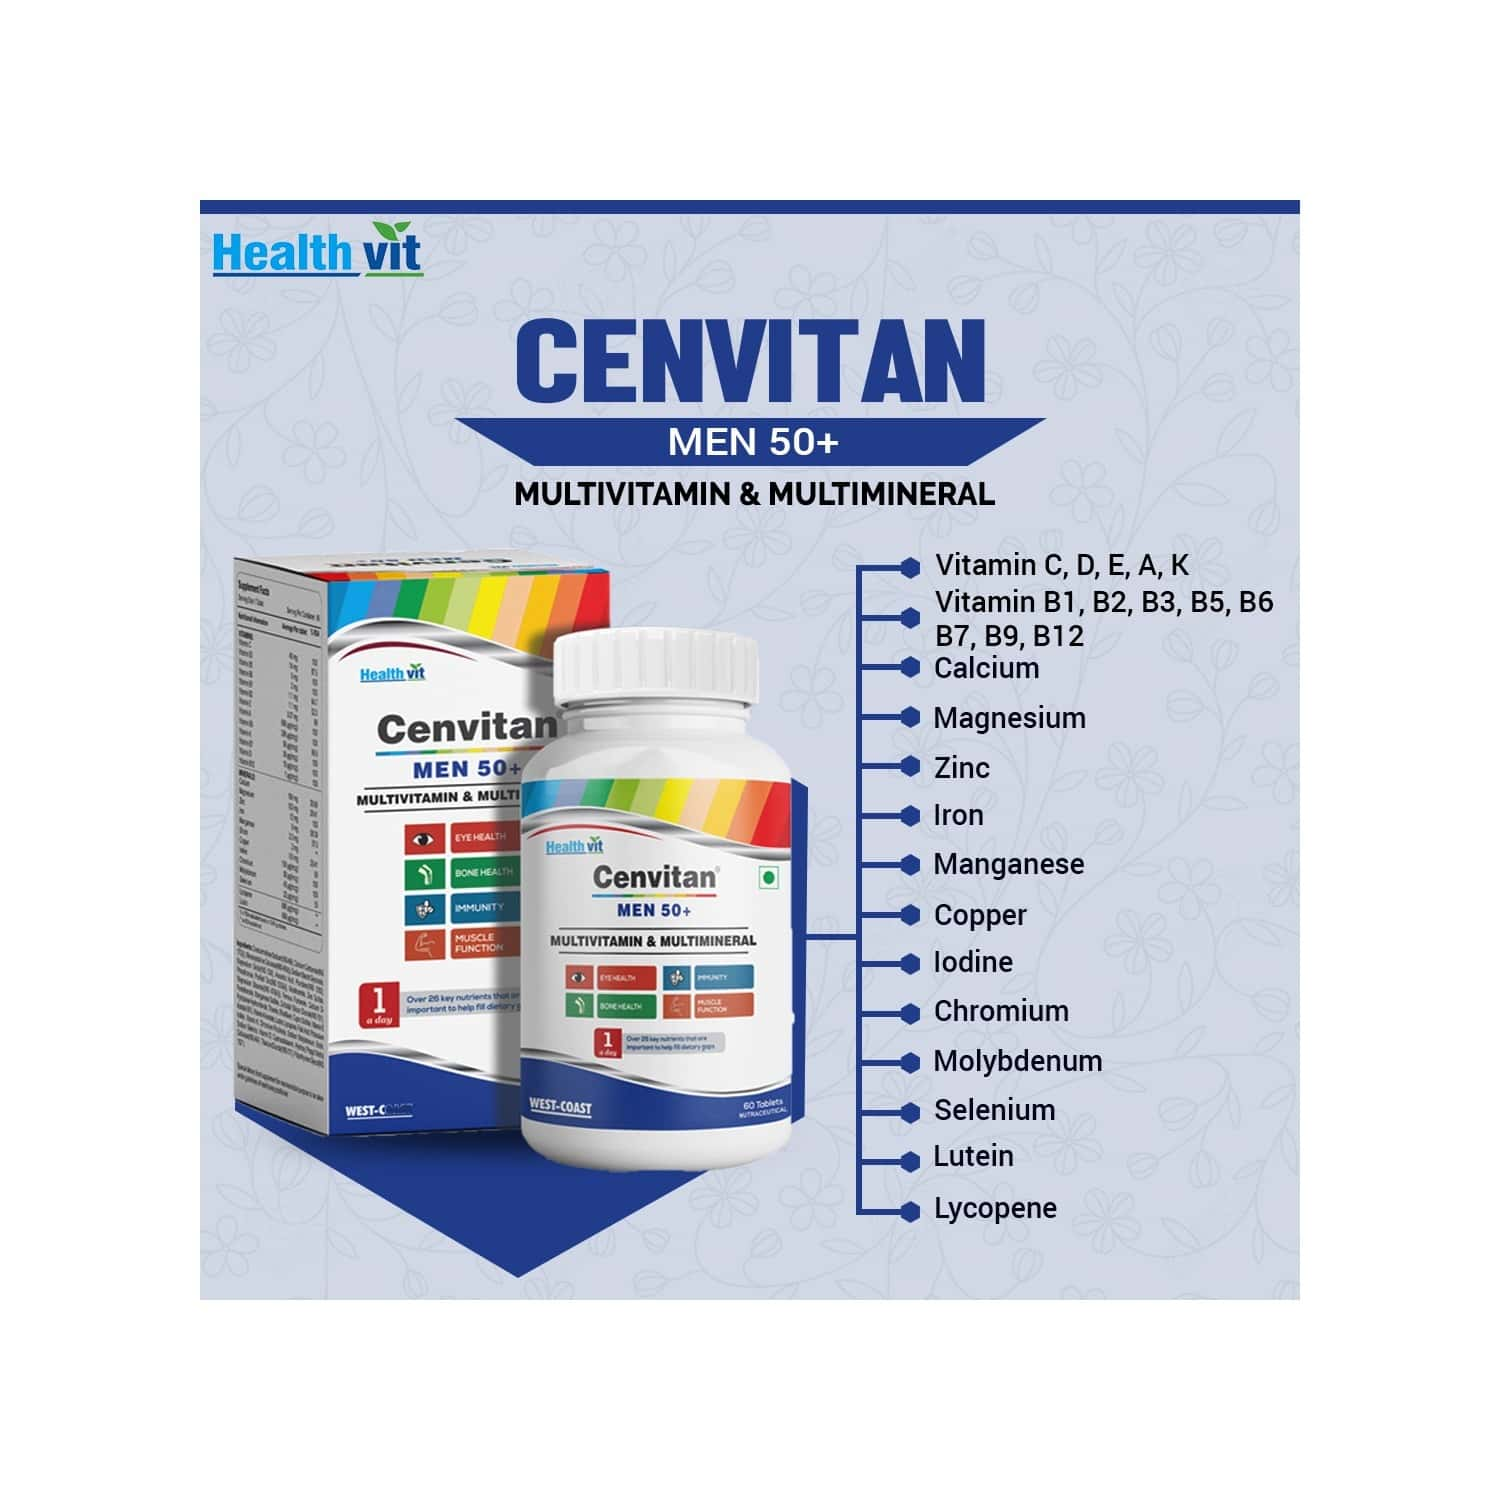 Healthvit Cenvitan Men 50+ Multivitamins And Multimineral For Eye Health, Immunity, Bone Health And Muscle Function - 60 Tablets